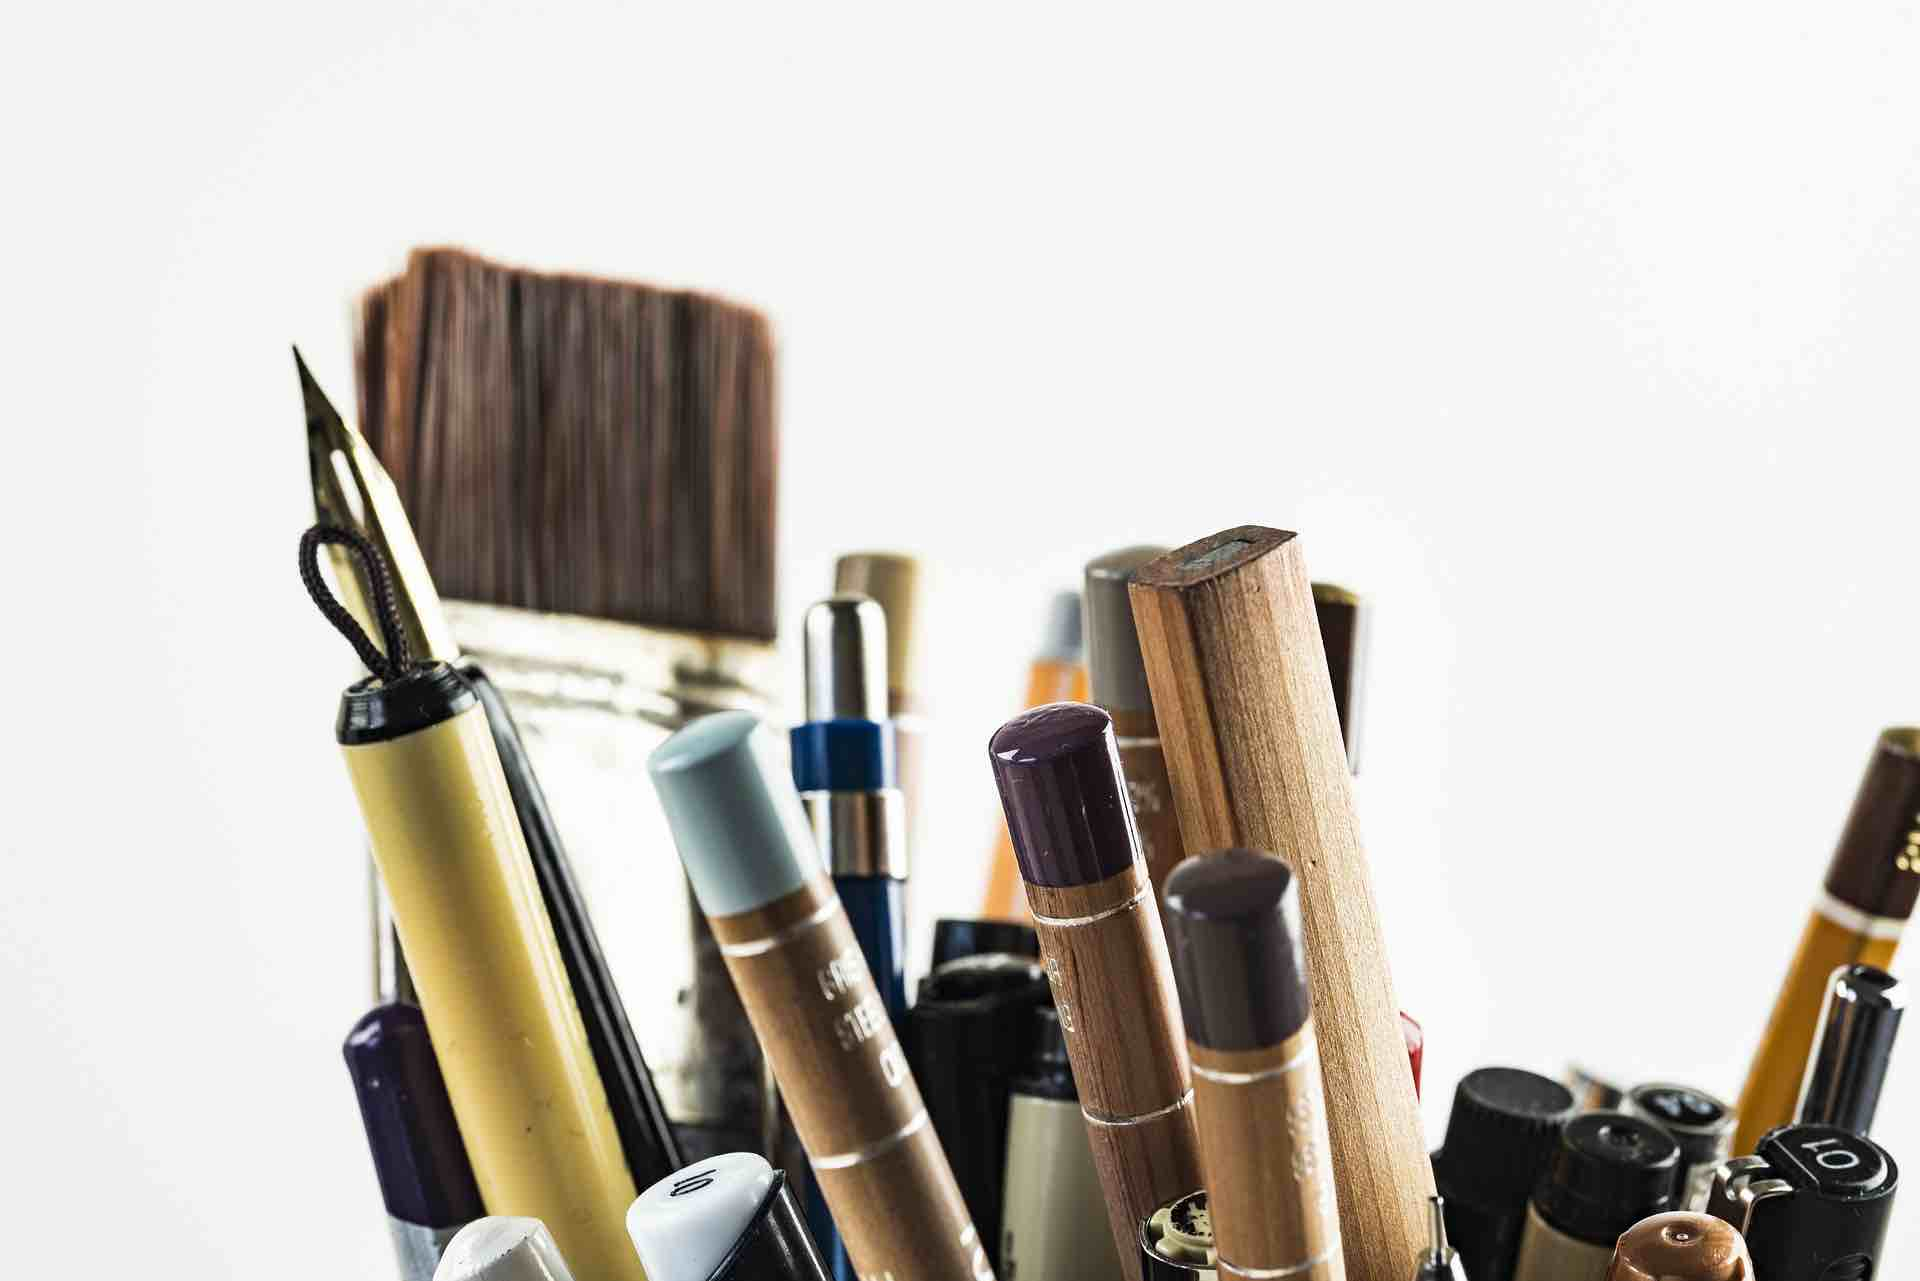 Photo of a Scenic Artist's pens and brushes.